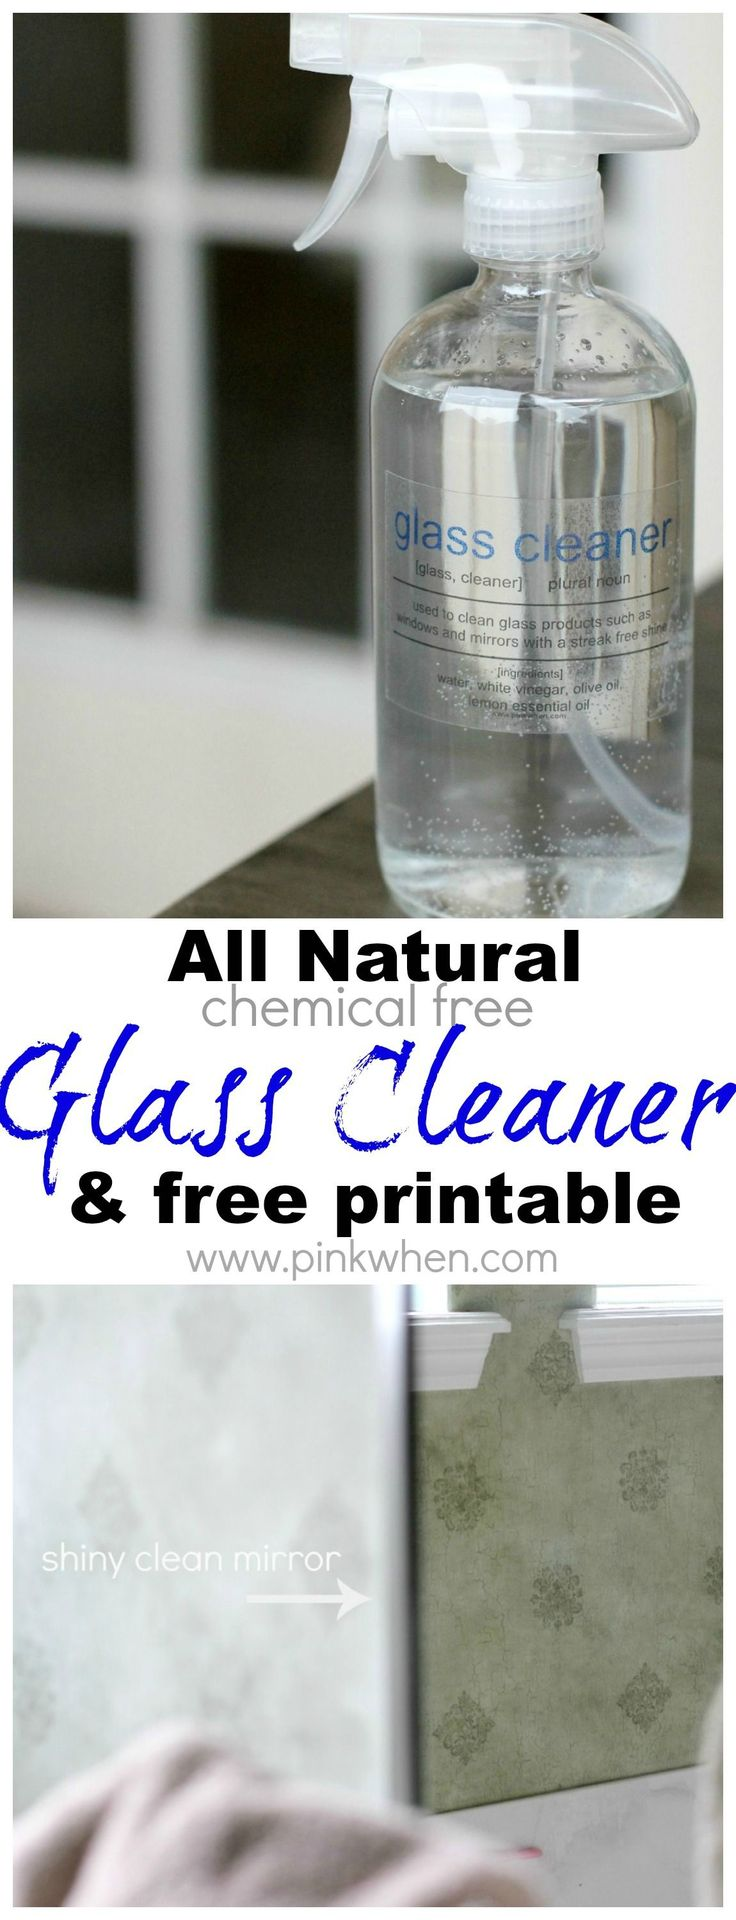 This is one of my favorite cleaners to date! All natural chemical free glass cleaner. #glasscleaner